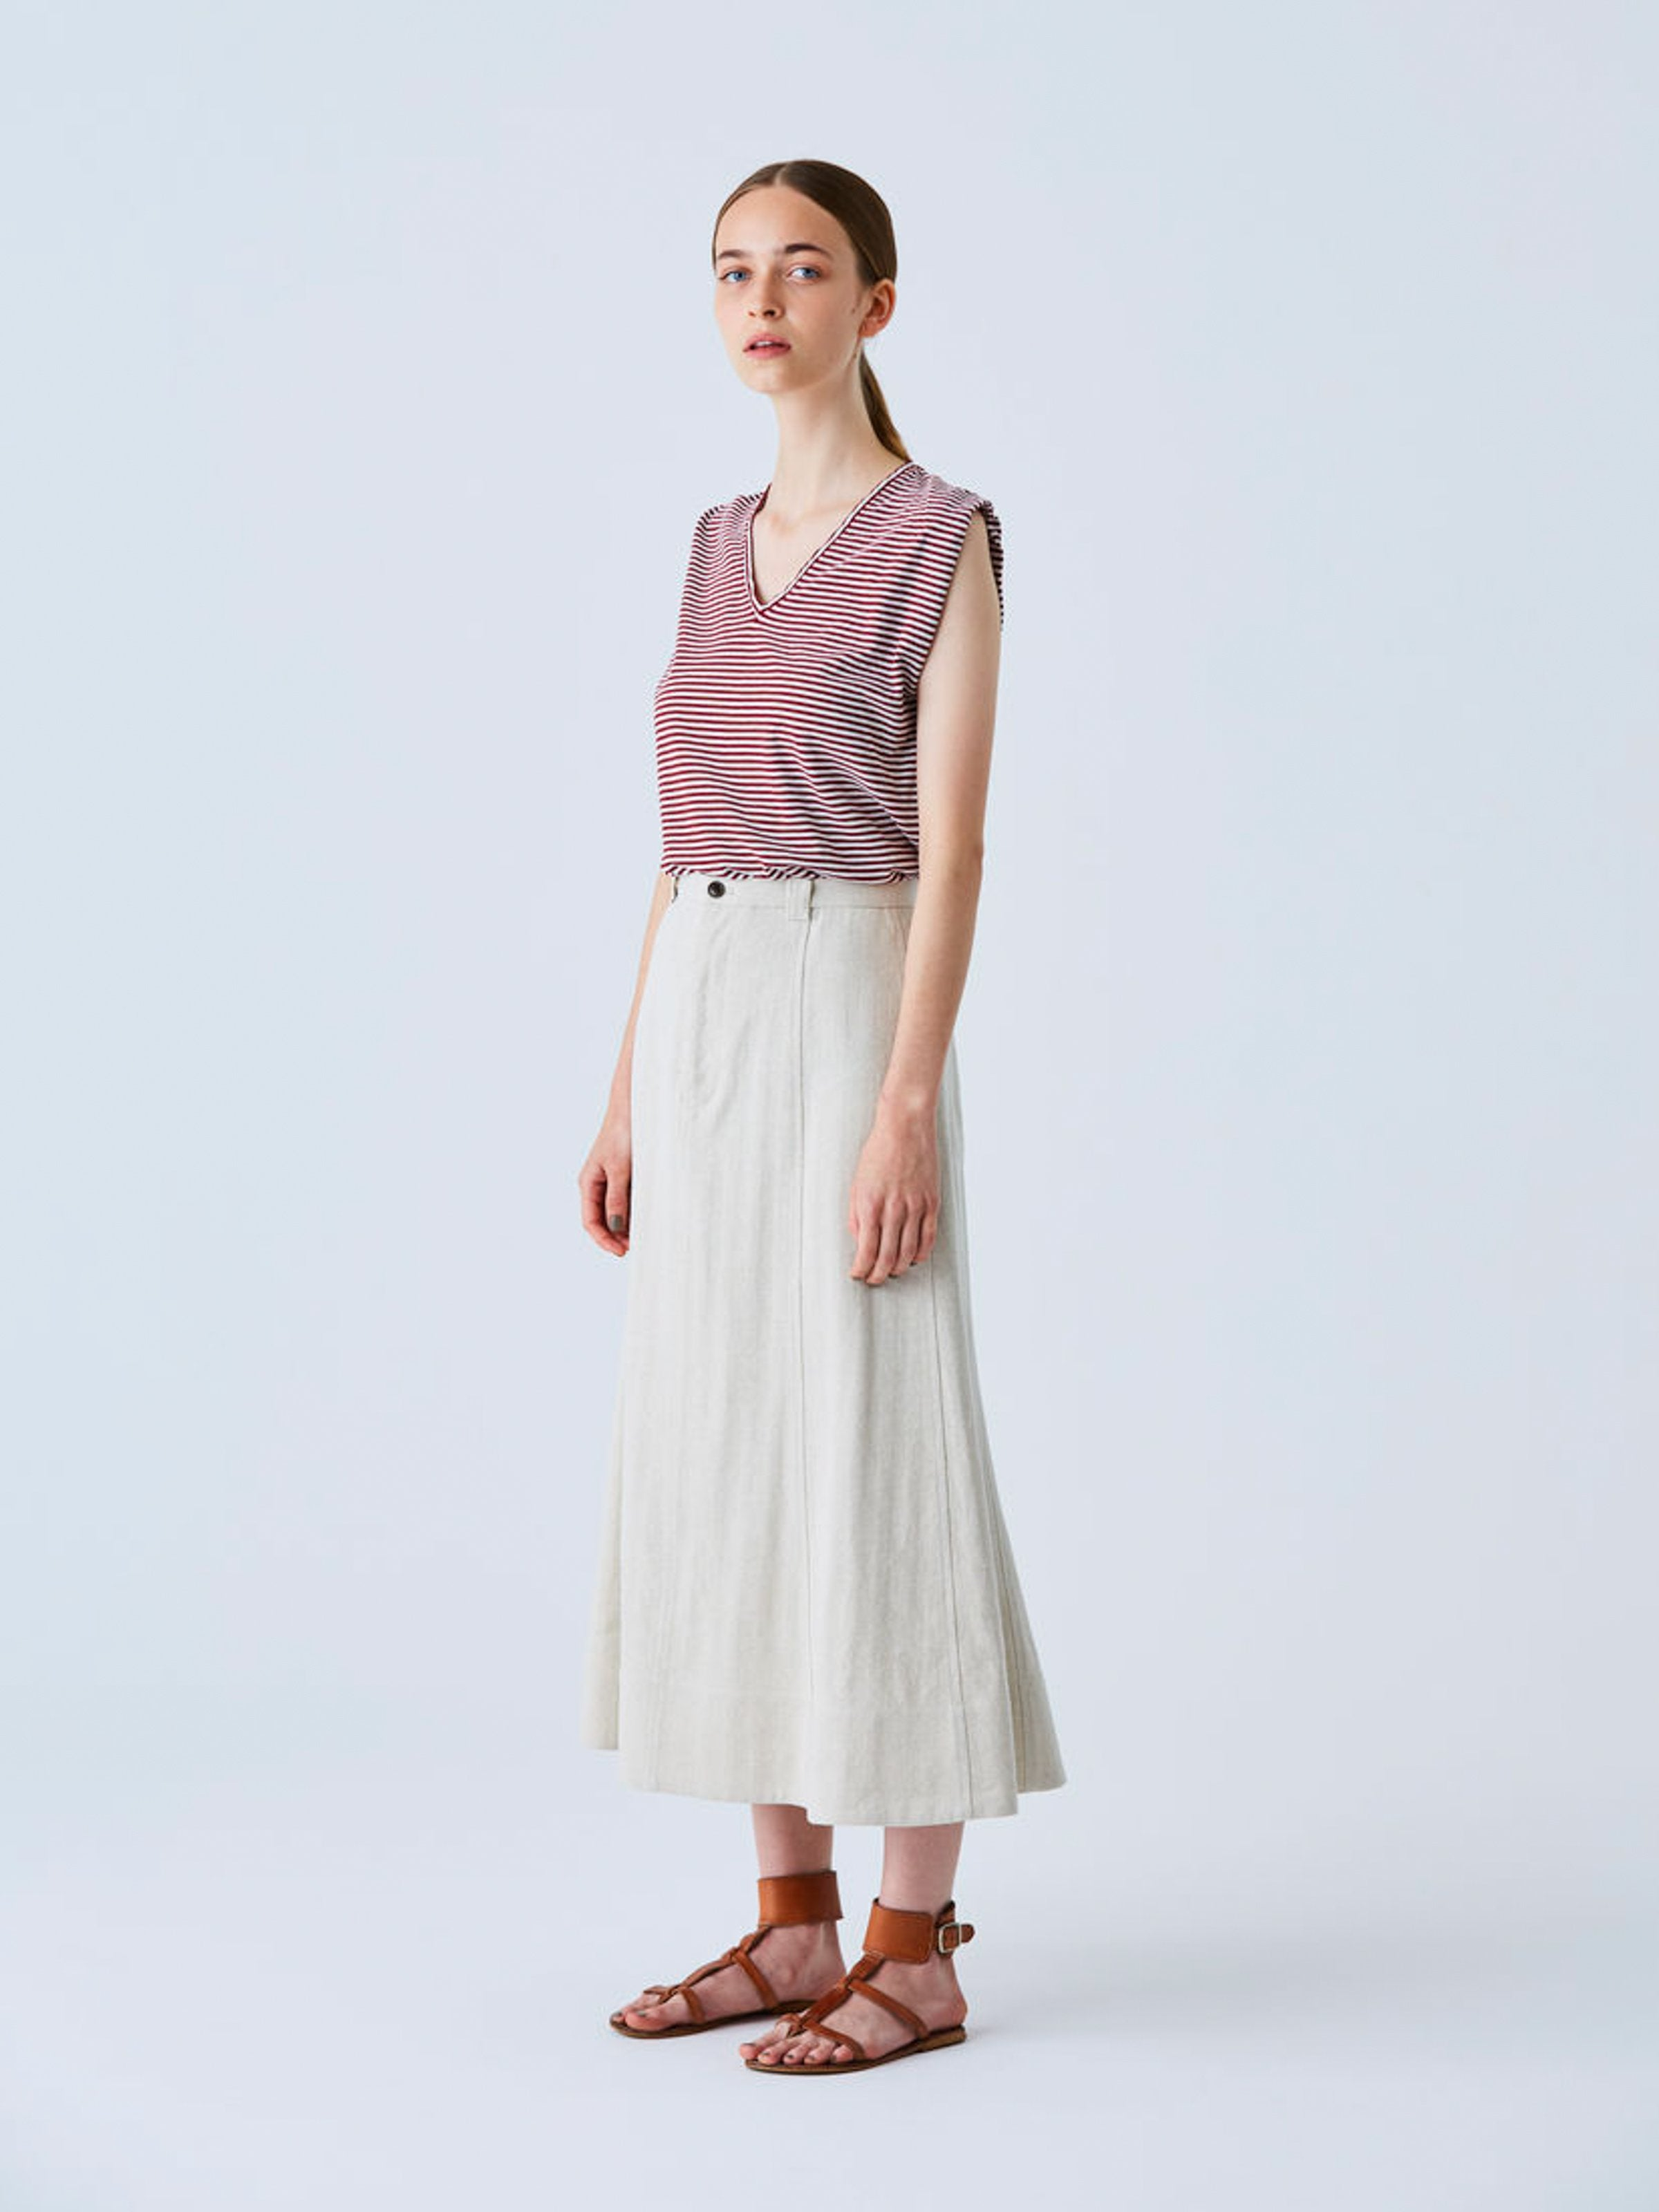 Namu Shop - Phlannel Li / Co Herringbone Semi-flared Skirt